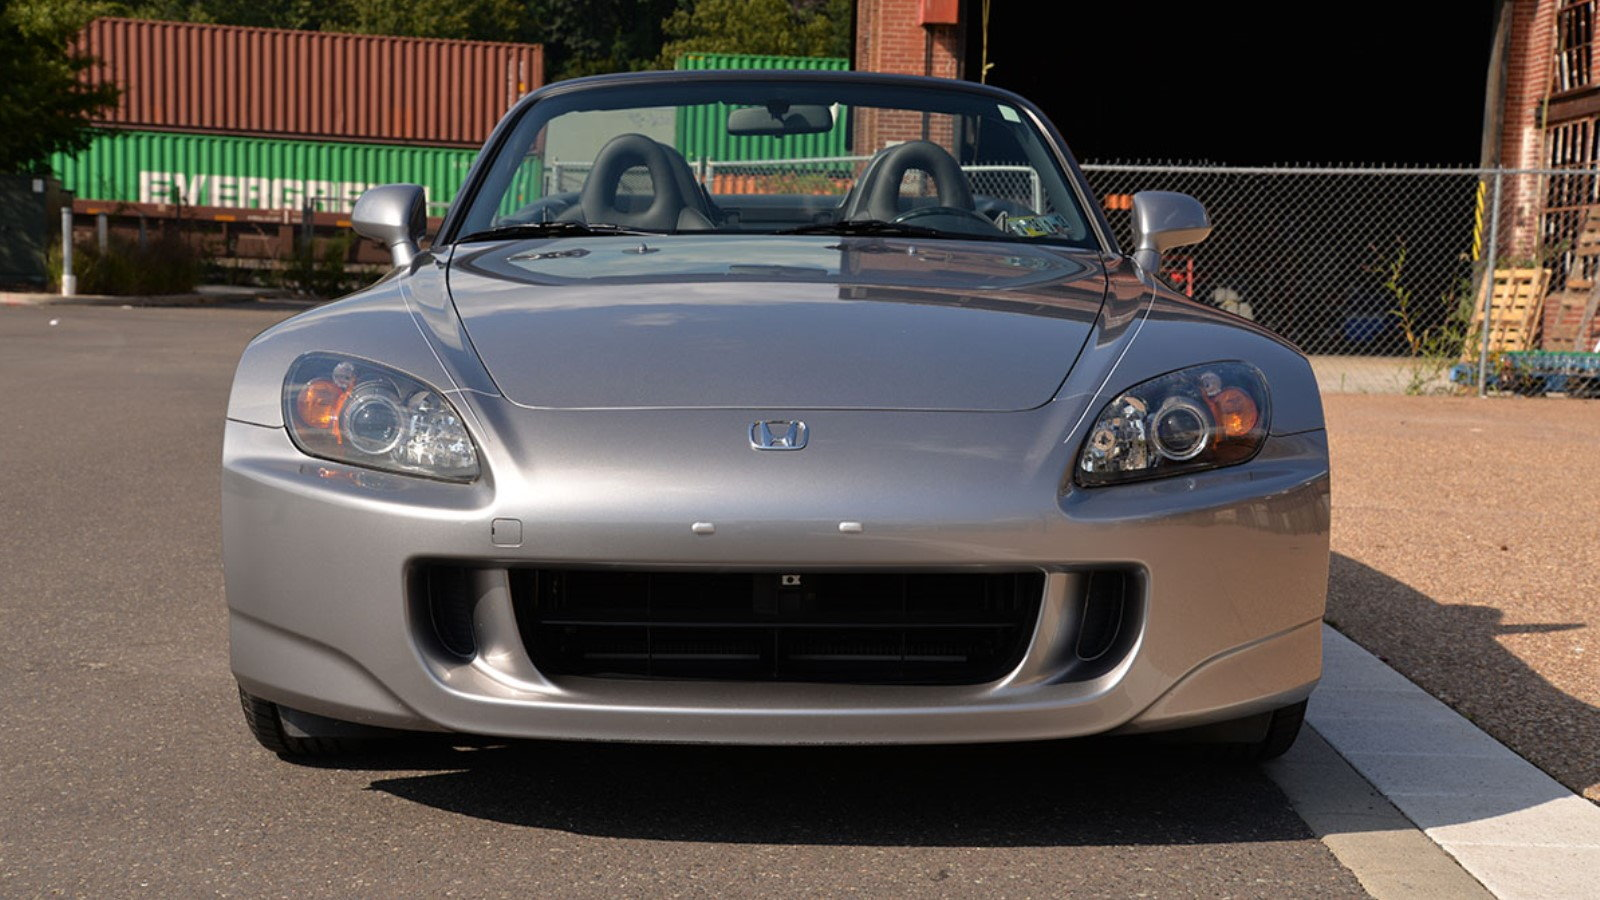 6K-Mile 2005 S2K on the Auction Block